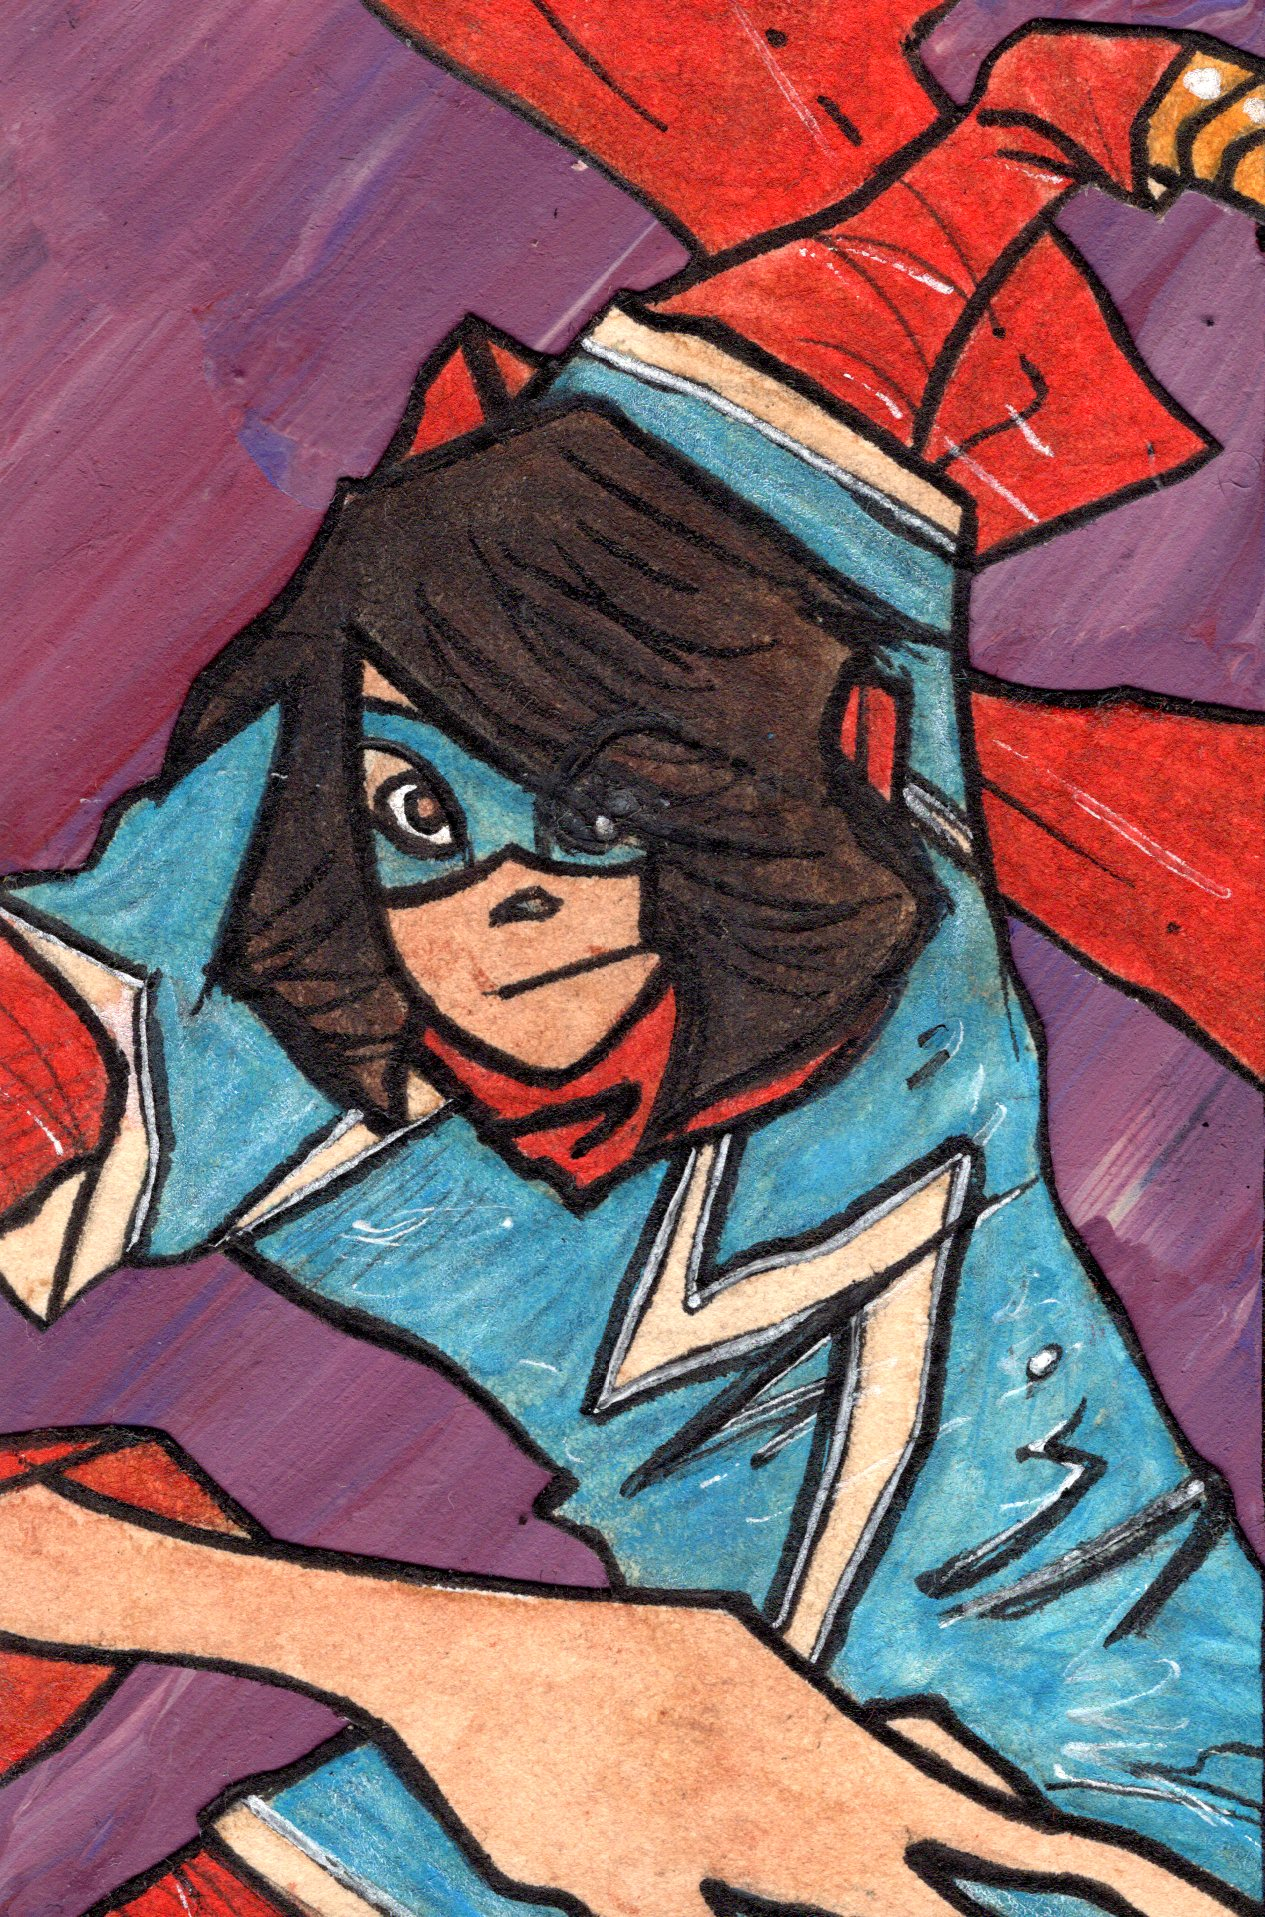 Ms. Marvel.